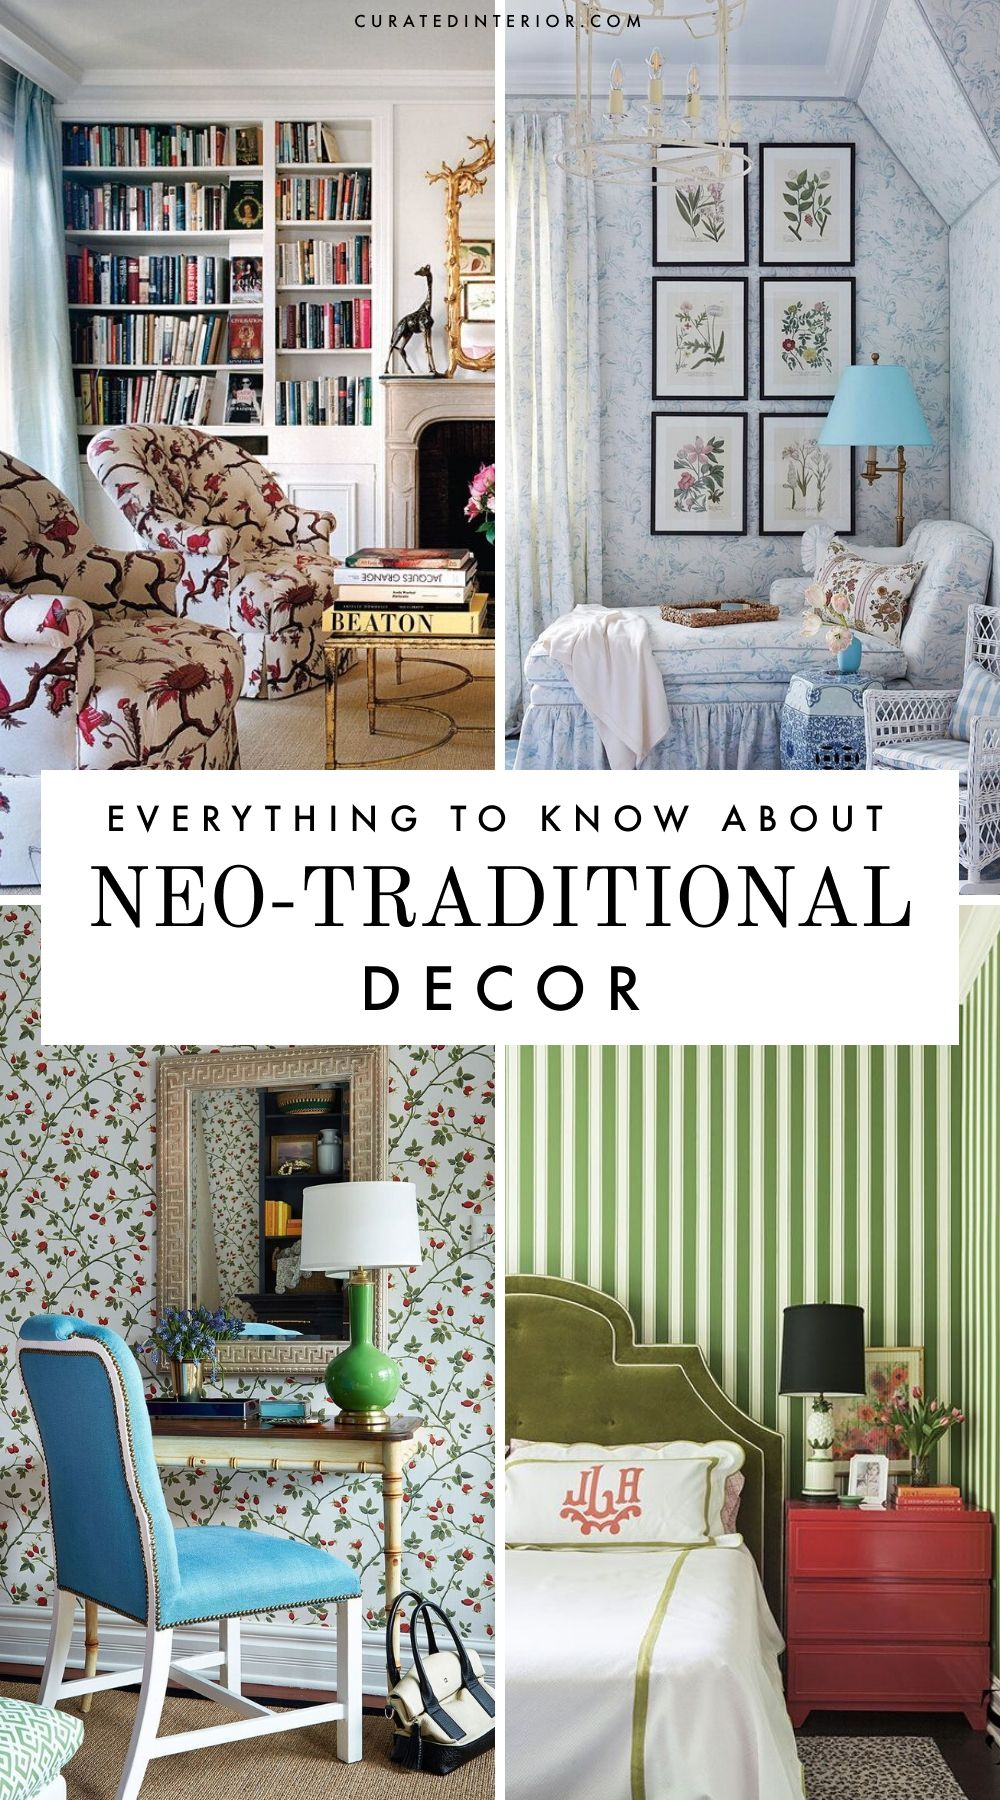 Everything to Know about Neo-Traditional Decor & Design